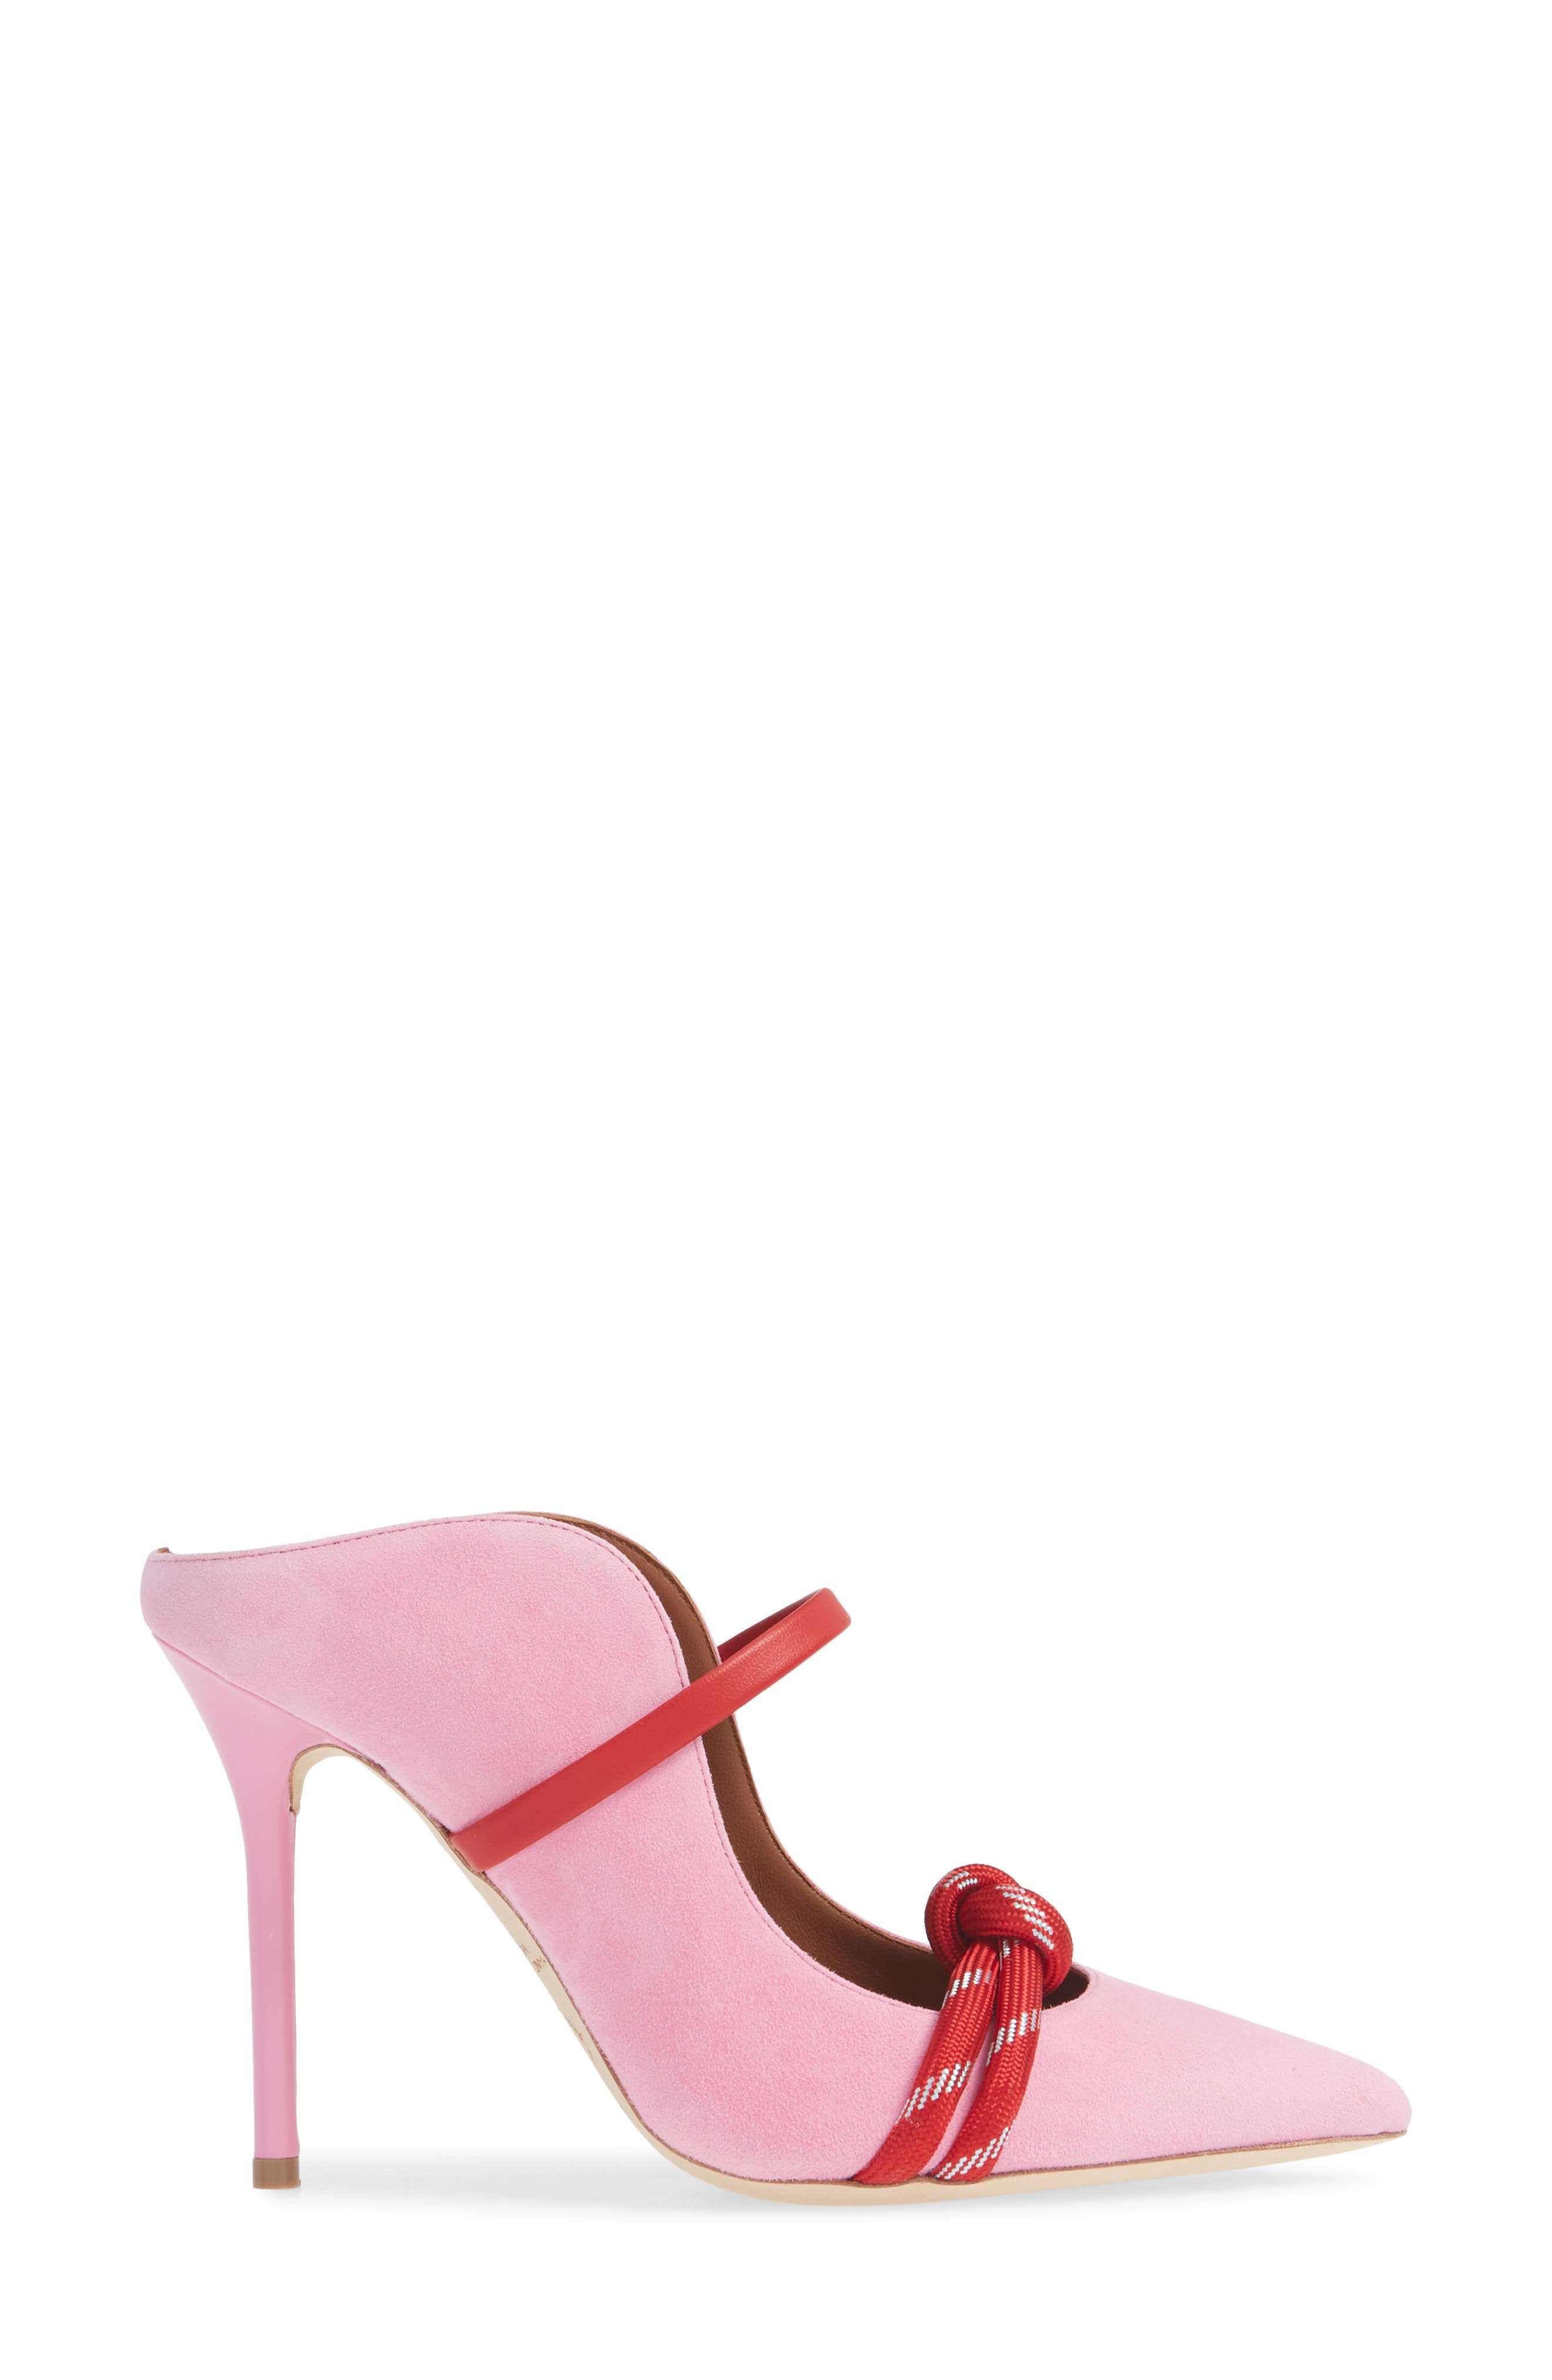 MALONE SOULIERS,                             Rope Pump,                             Alternate thumbnail 3, color,                             BUBBLEGUM/ RED